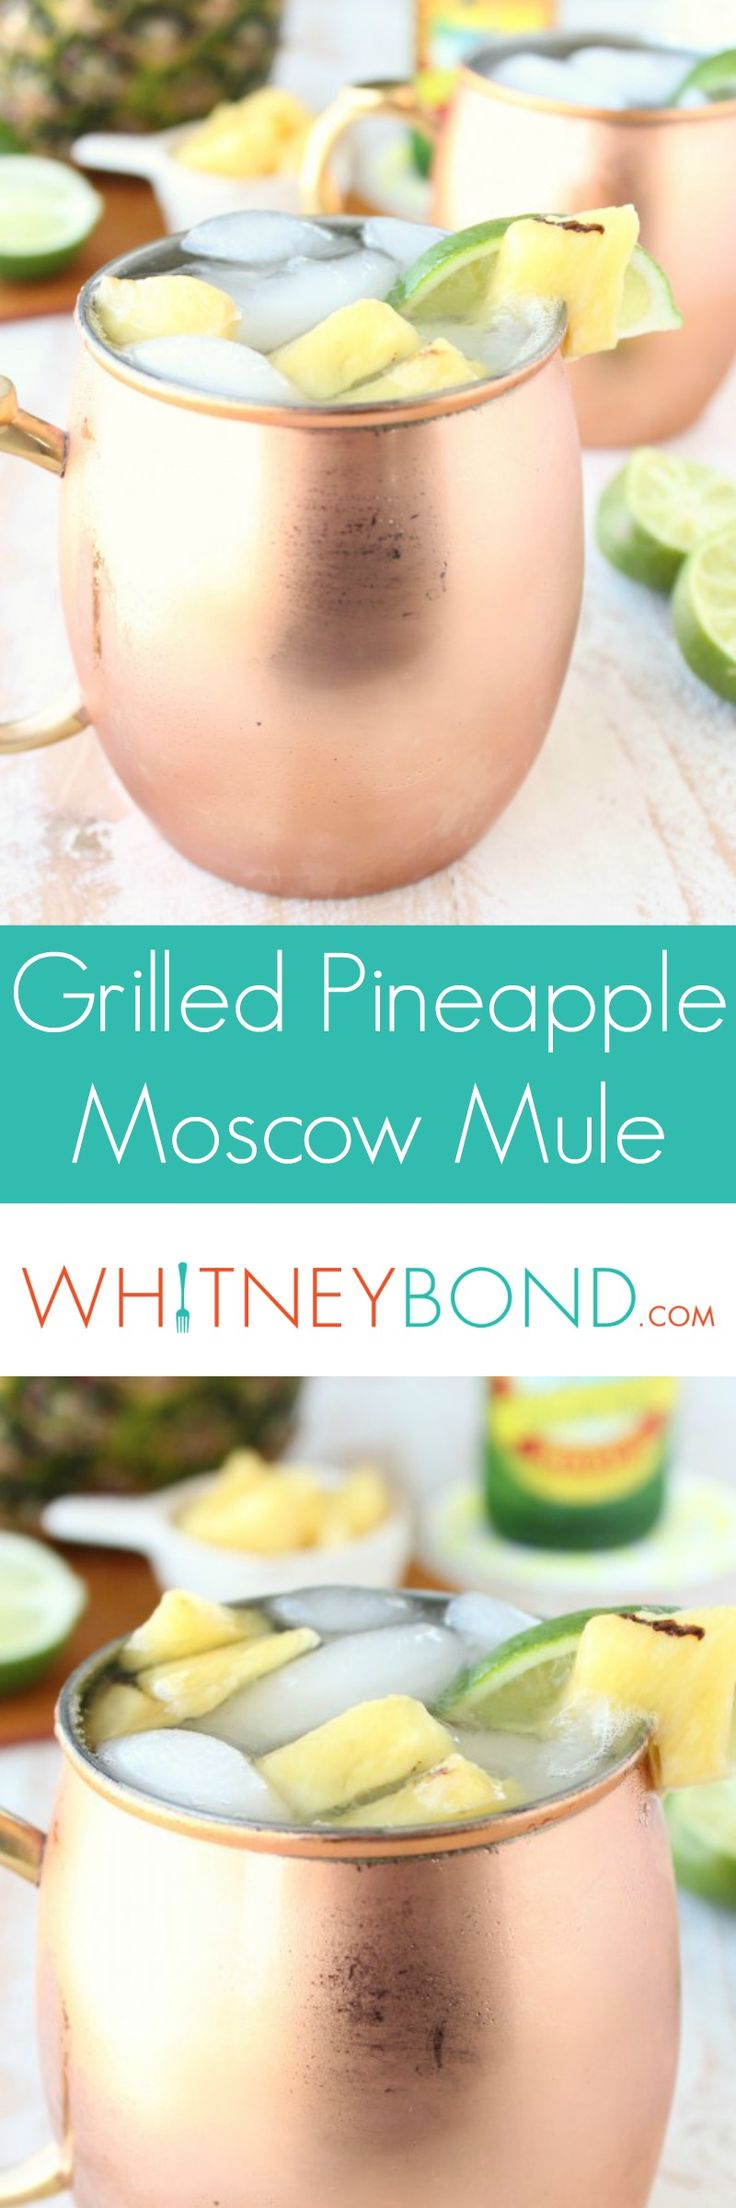 Fresh grilled pineapple adds delicious flavor to a classic Moscow Mule in this tasty cocktail recipe! Grab Moscow Mule Mugs at @worldmarket to keep them cool! #WorldMarketTribe